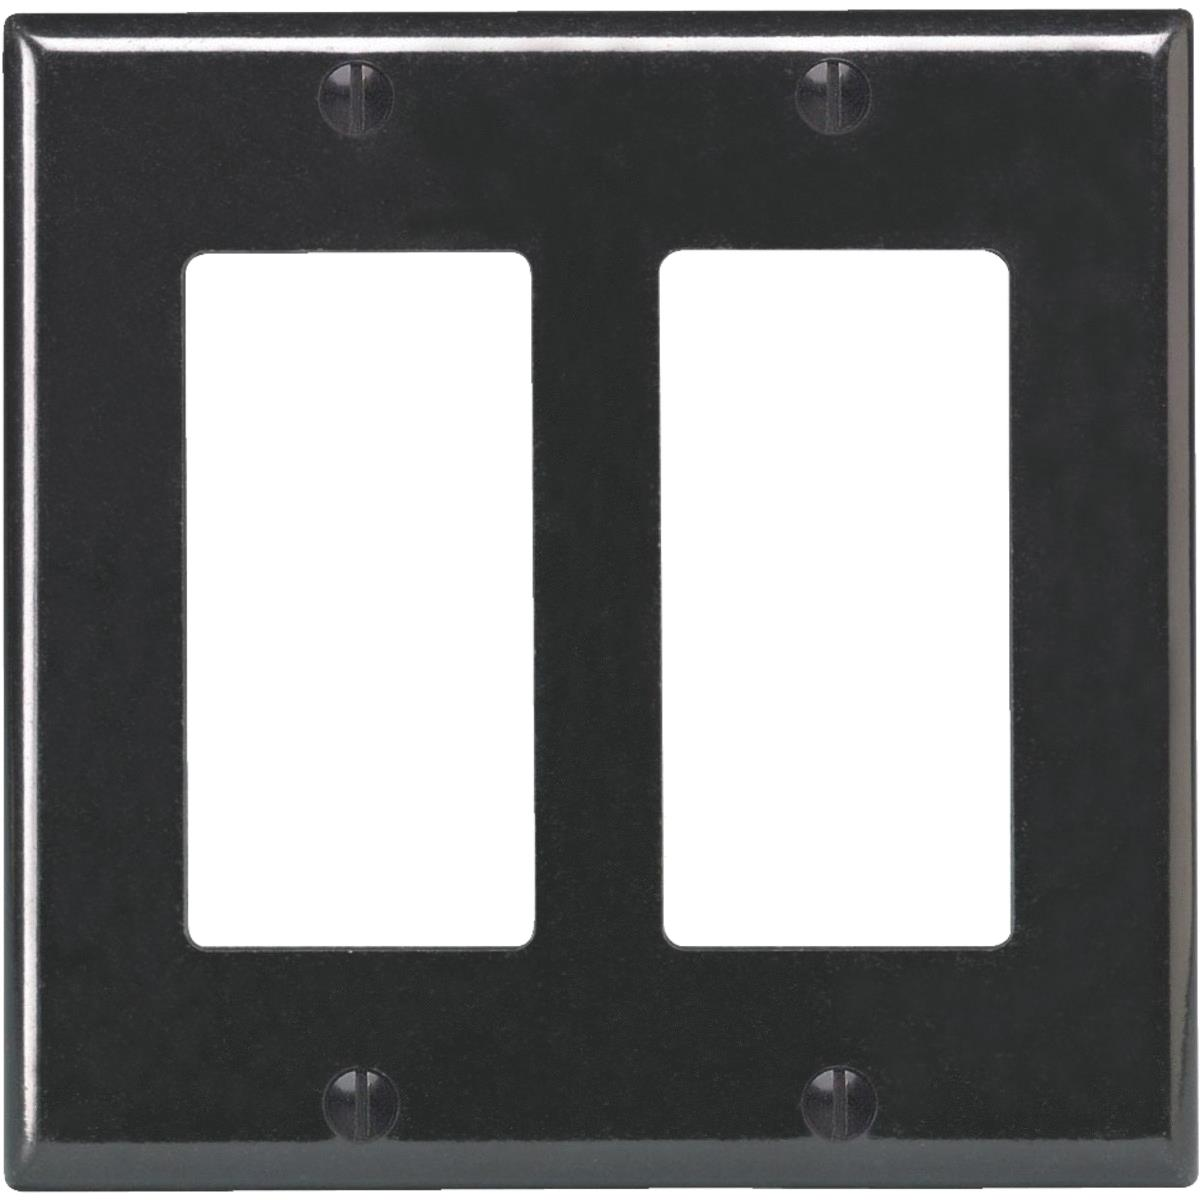 Leviton DECORA Double Rocker Decorator Wall Plate